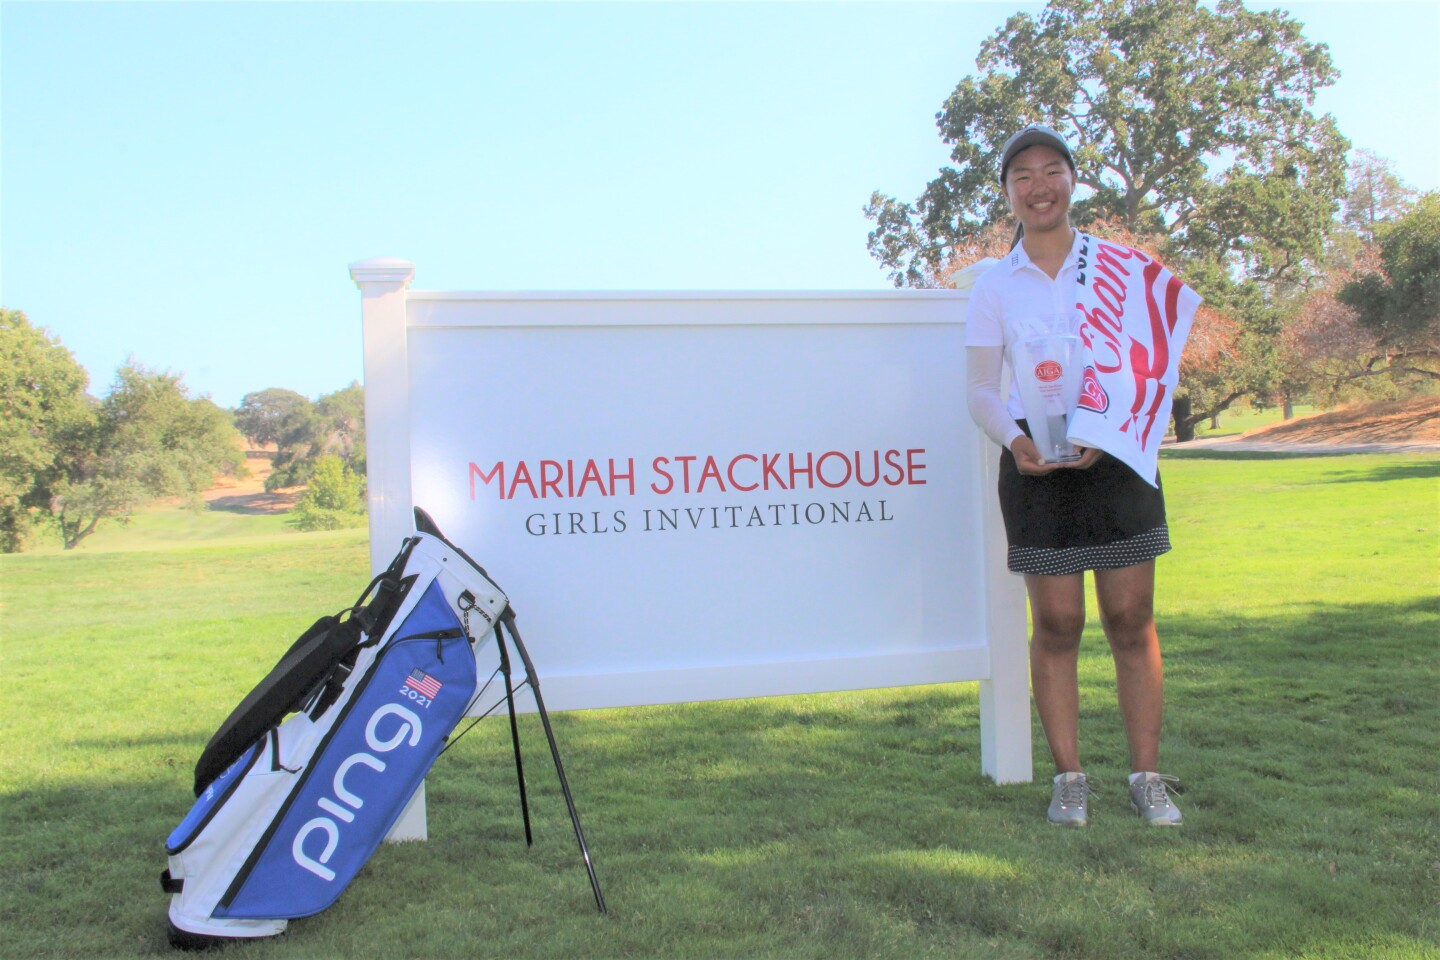 Michelle Liu Champ Bag trophy in front of signage - Mariah Stackhouse Girls Invitational - 2021